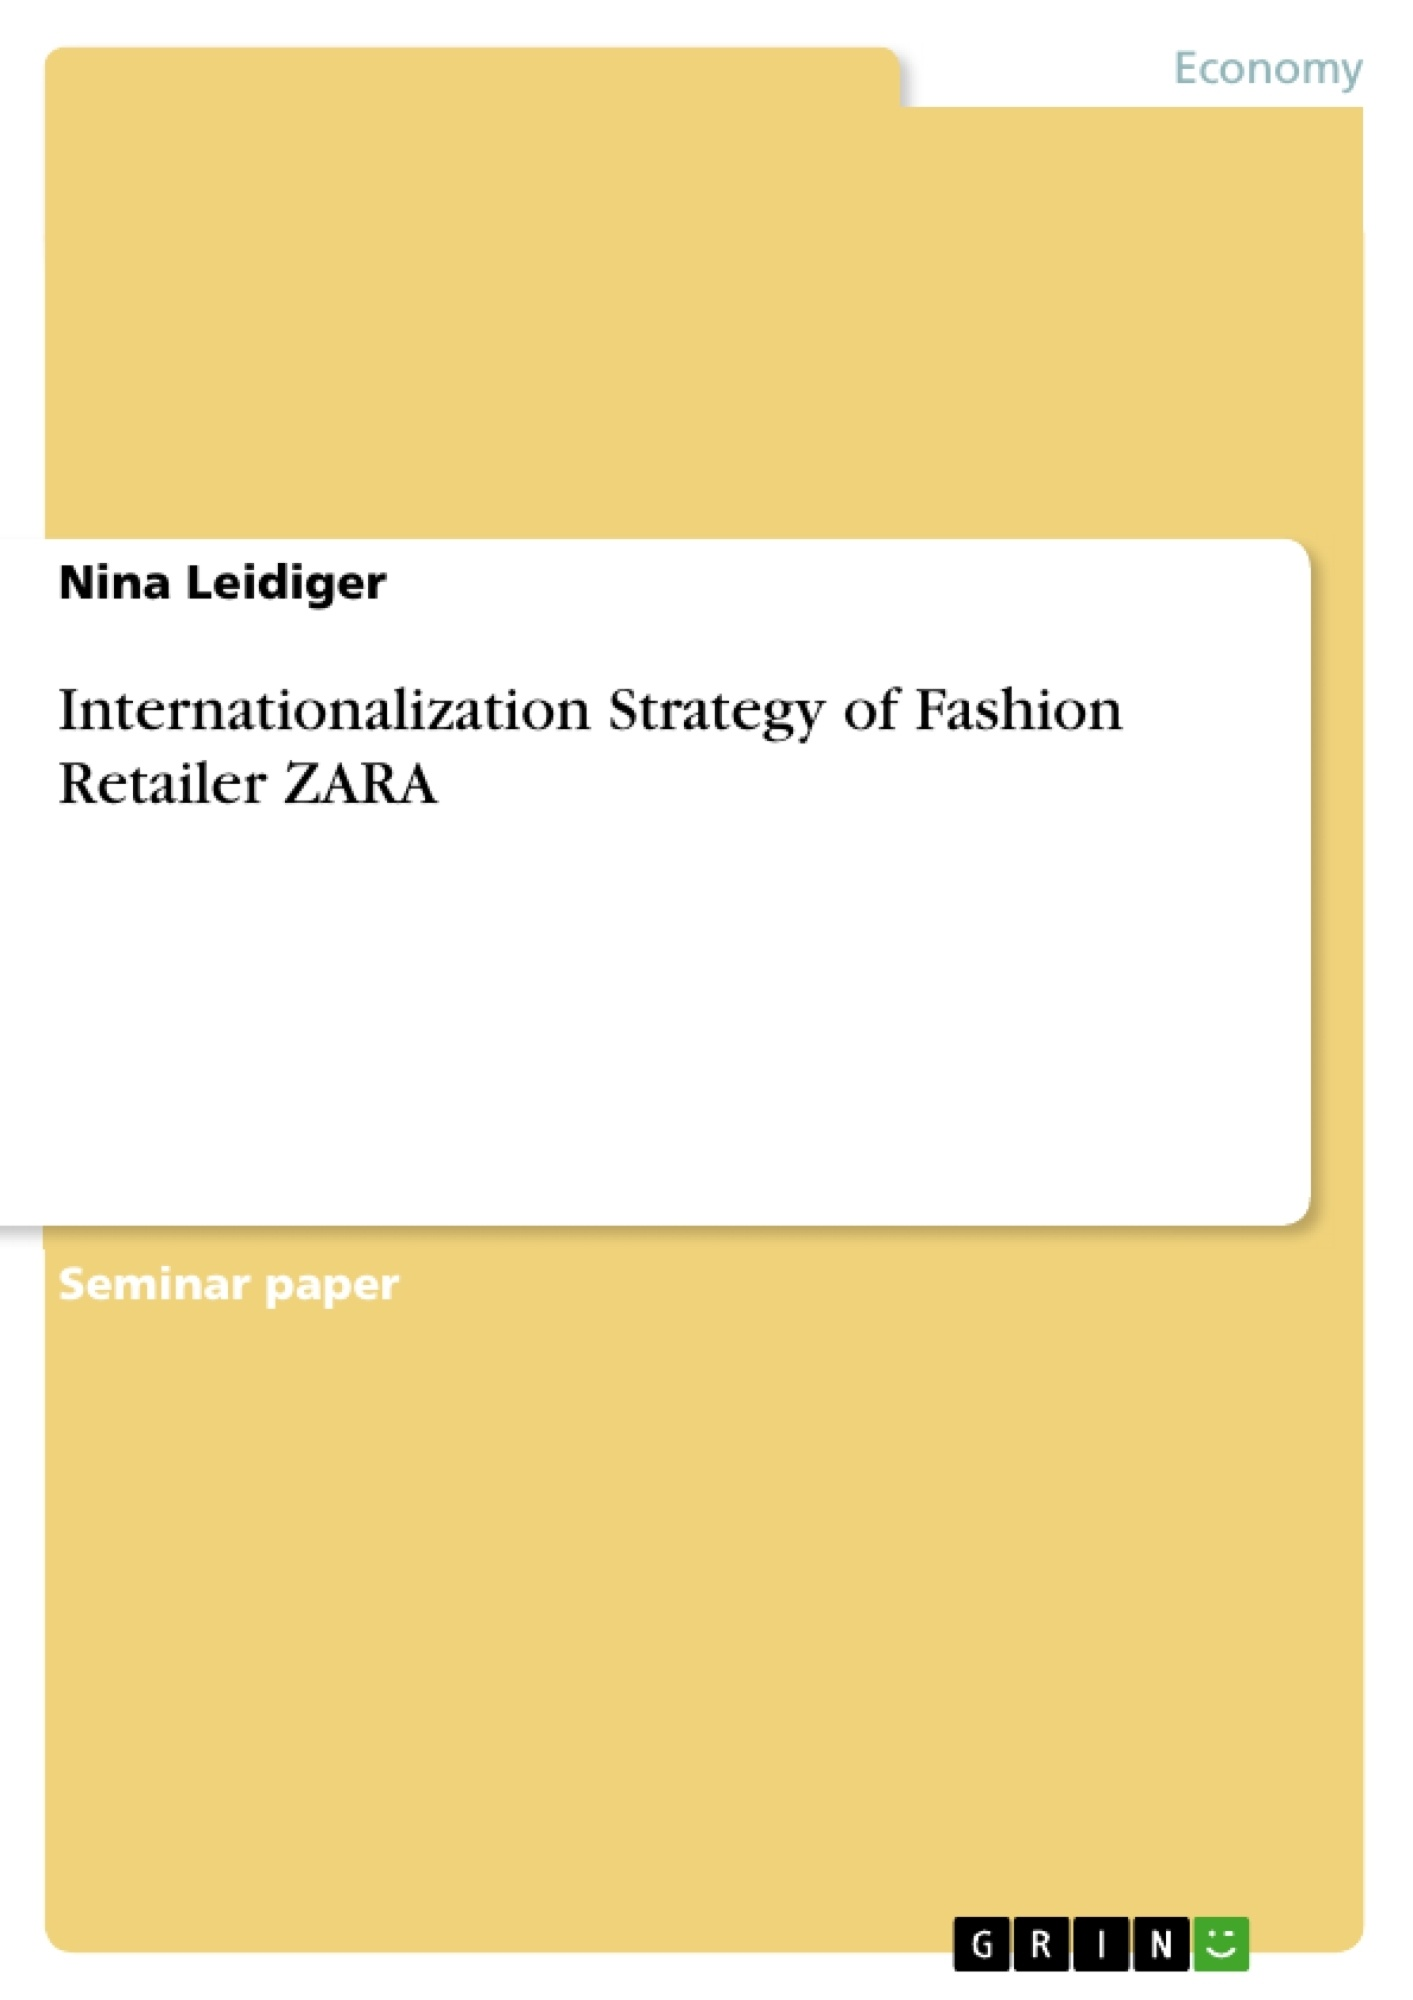 case study internationalisation of the spanish fashion brand zara